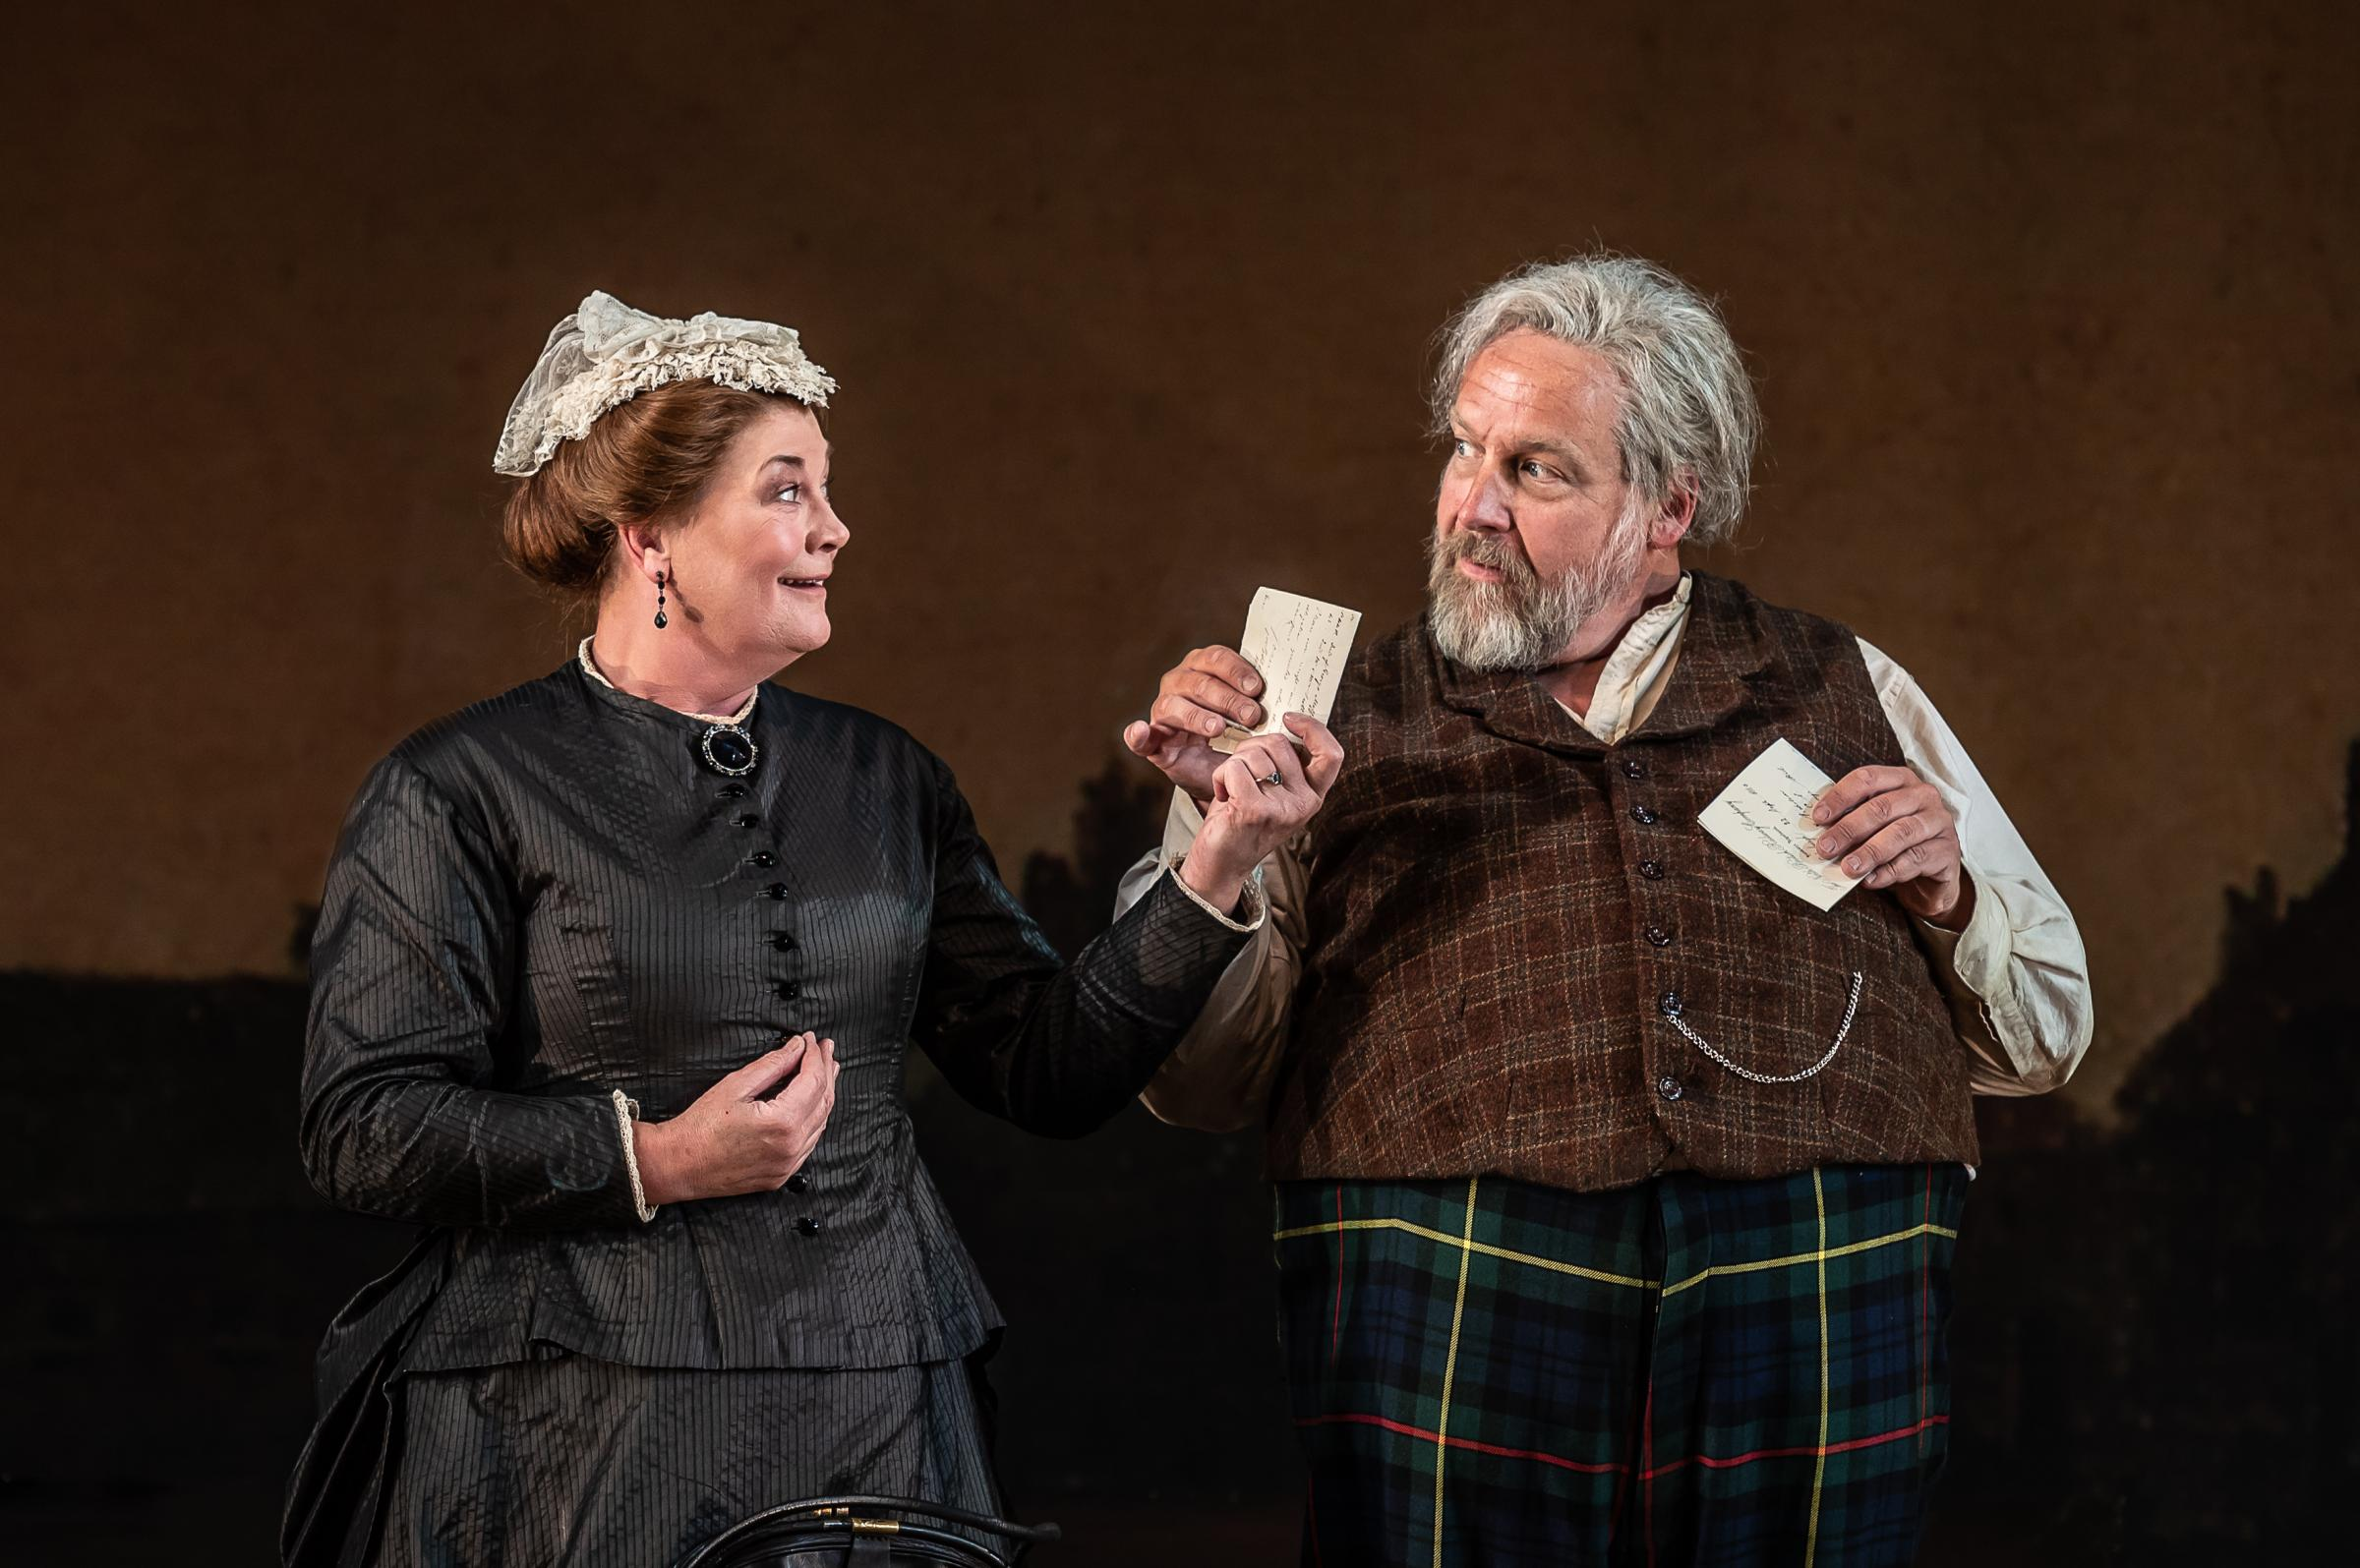 Henry Waddington as Sir John Falstaff and Yvonne Howard as Mistress Quickly                                                                 Picture: Clive Barda